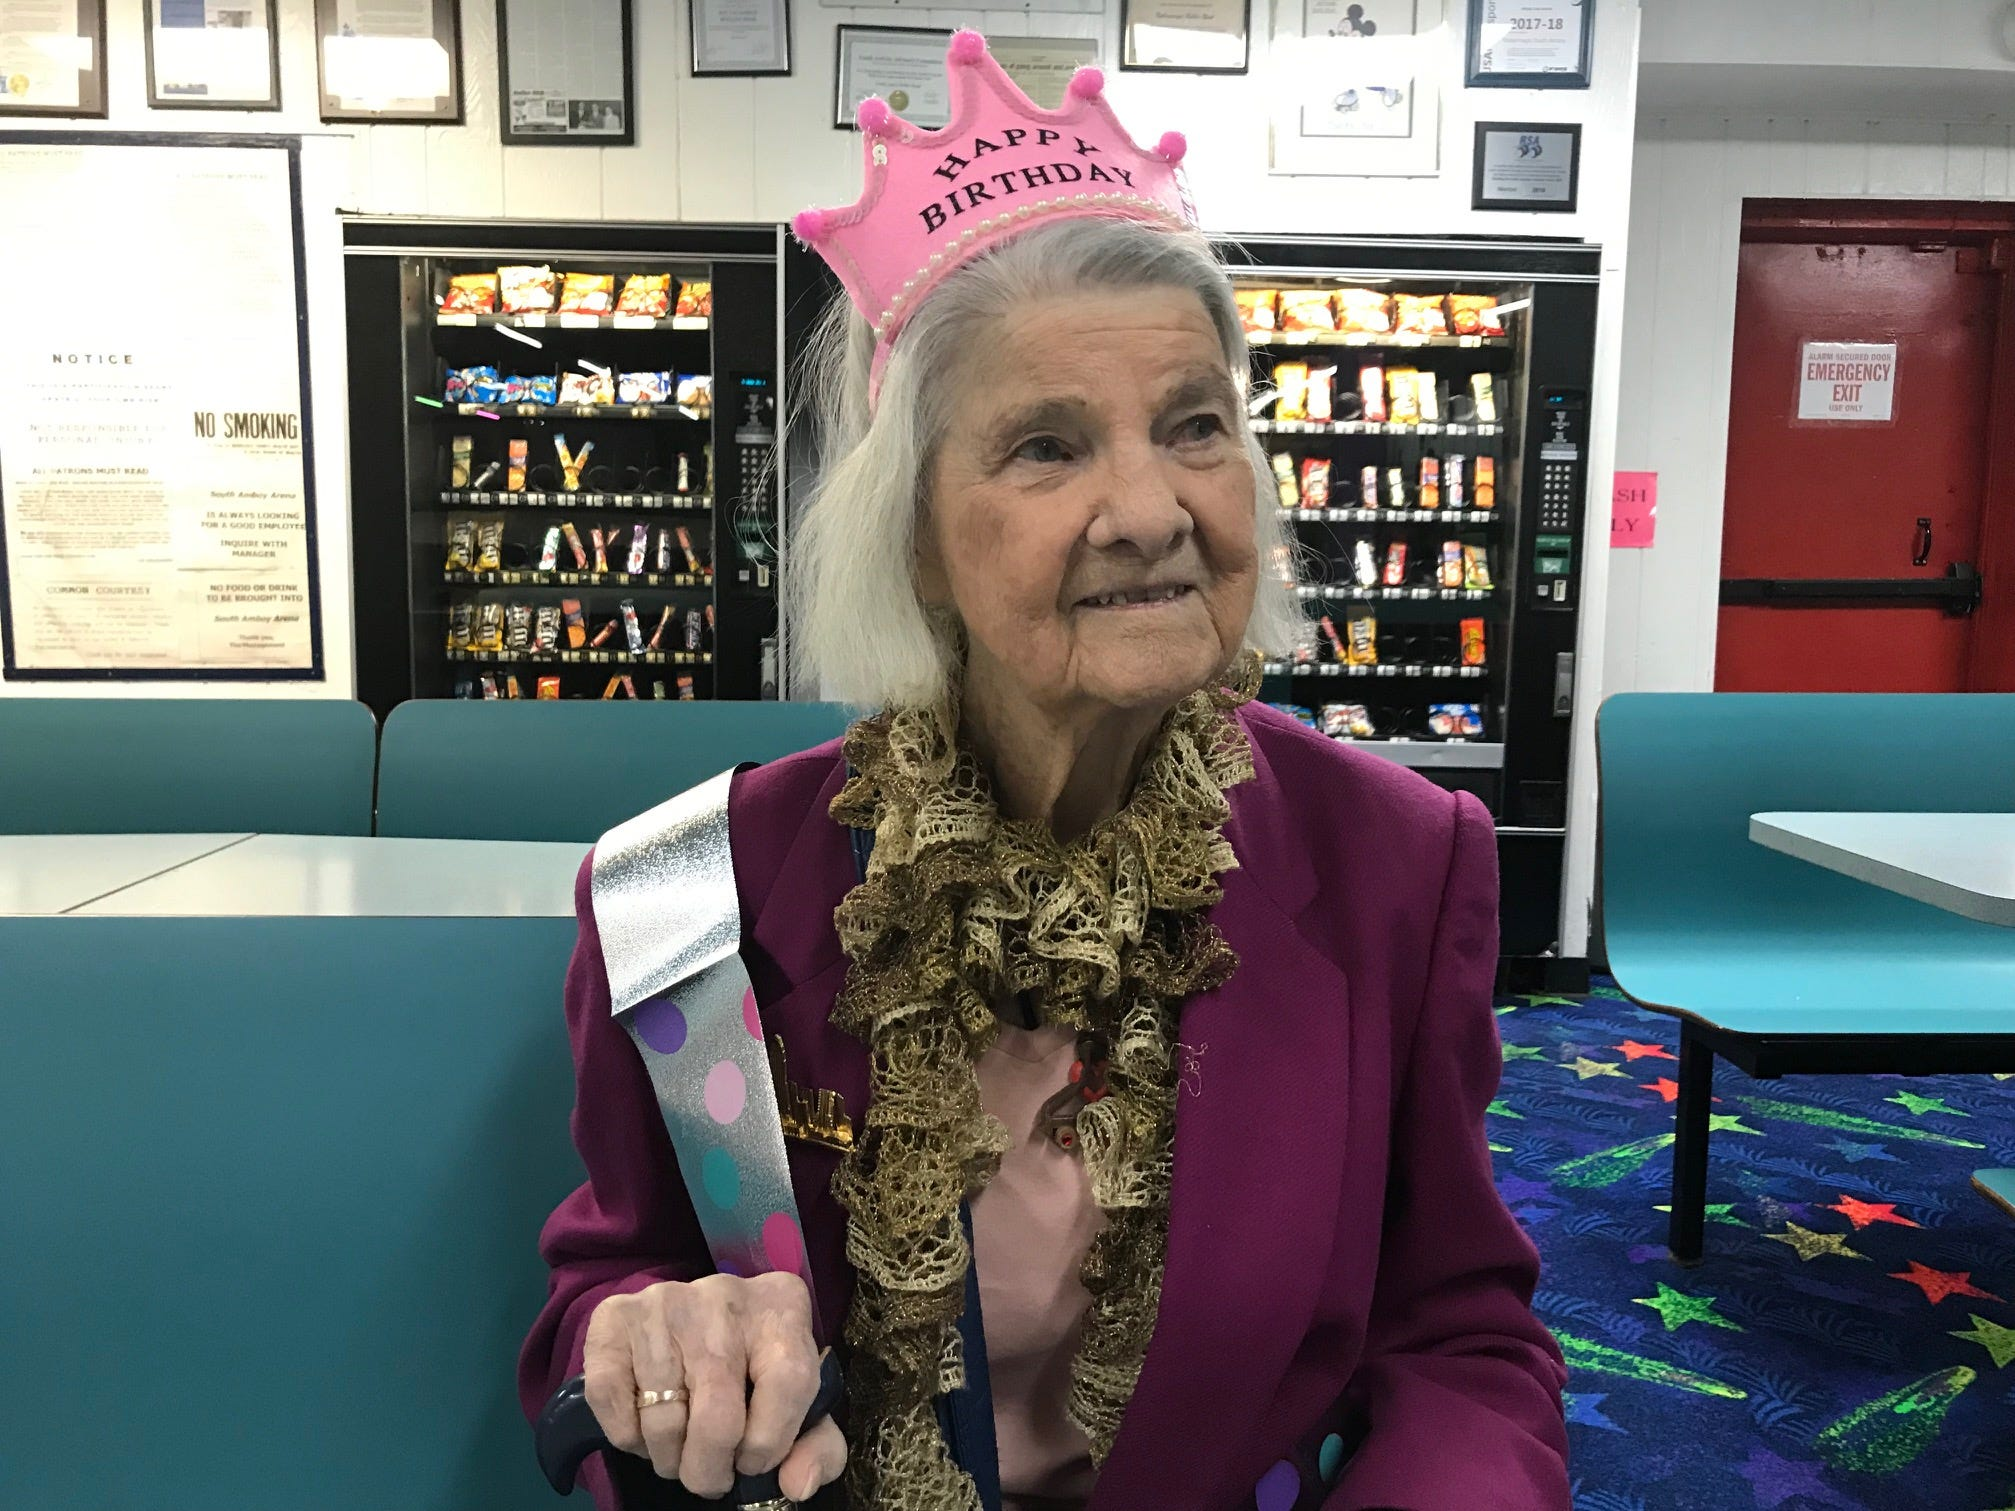 Carrie Callandrullo celebrated her 100th birthday Nov. 14 with her friends at the skating rink. At least twice a week, more than 20 seniors regularly gather at South Amboy Arenaand take to the rink for a couple hours of roller skating. They range in age from 55 to 100.